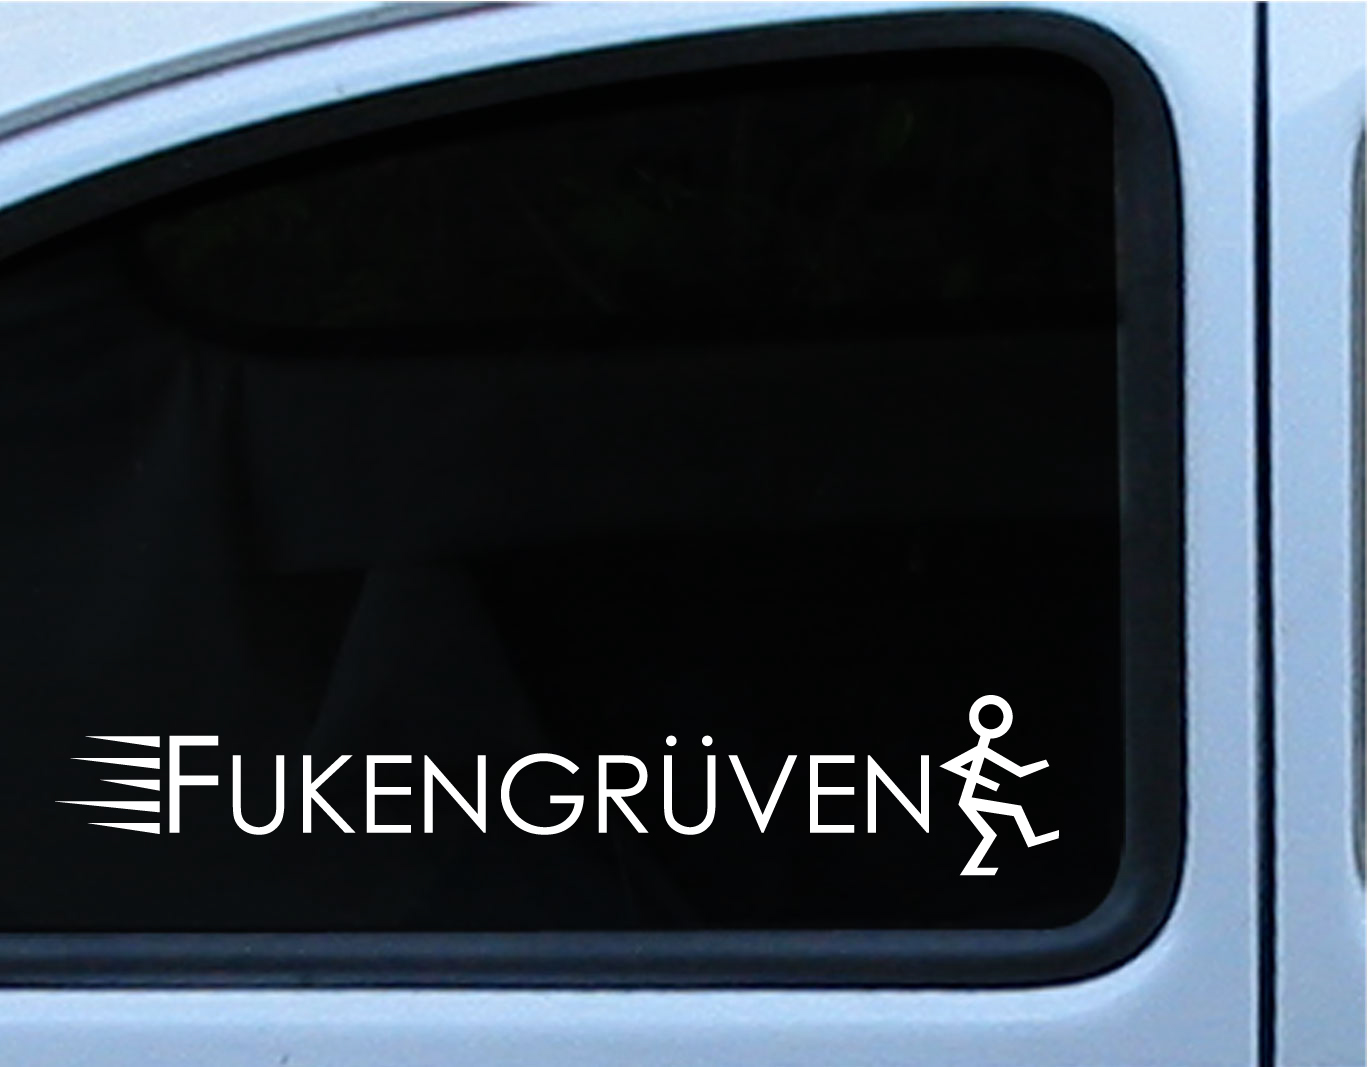 Volkswagen vw fukengruven logo die cut vinyl decal sticker 3x17 in multiple of different colors on storenvy